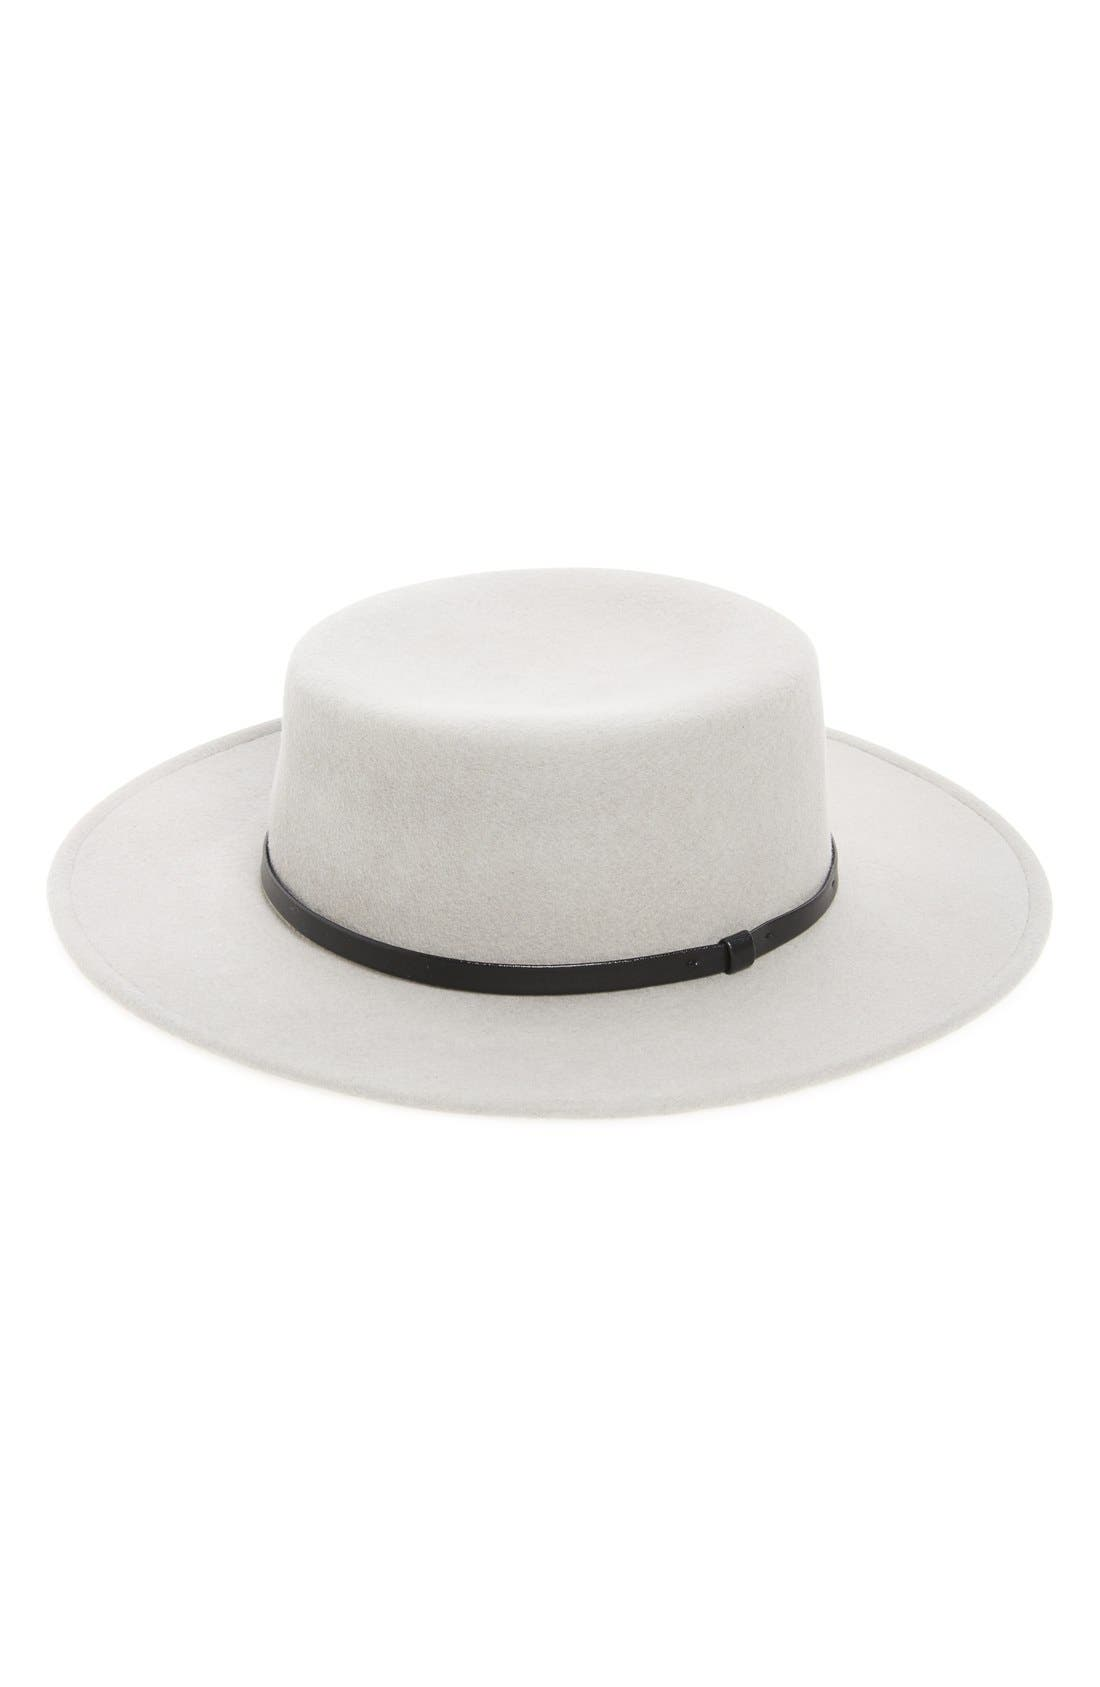 Main Image - Sole Society Wool Boater Hat